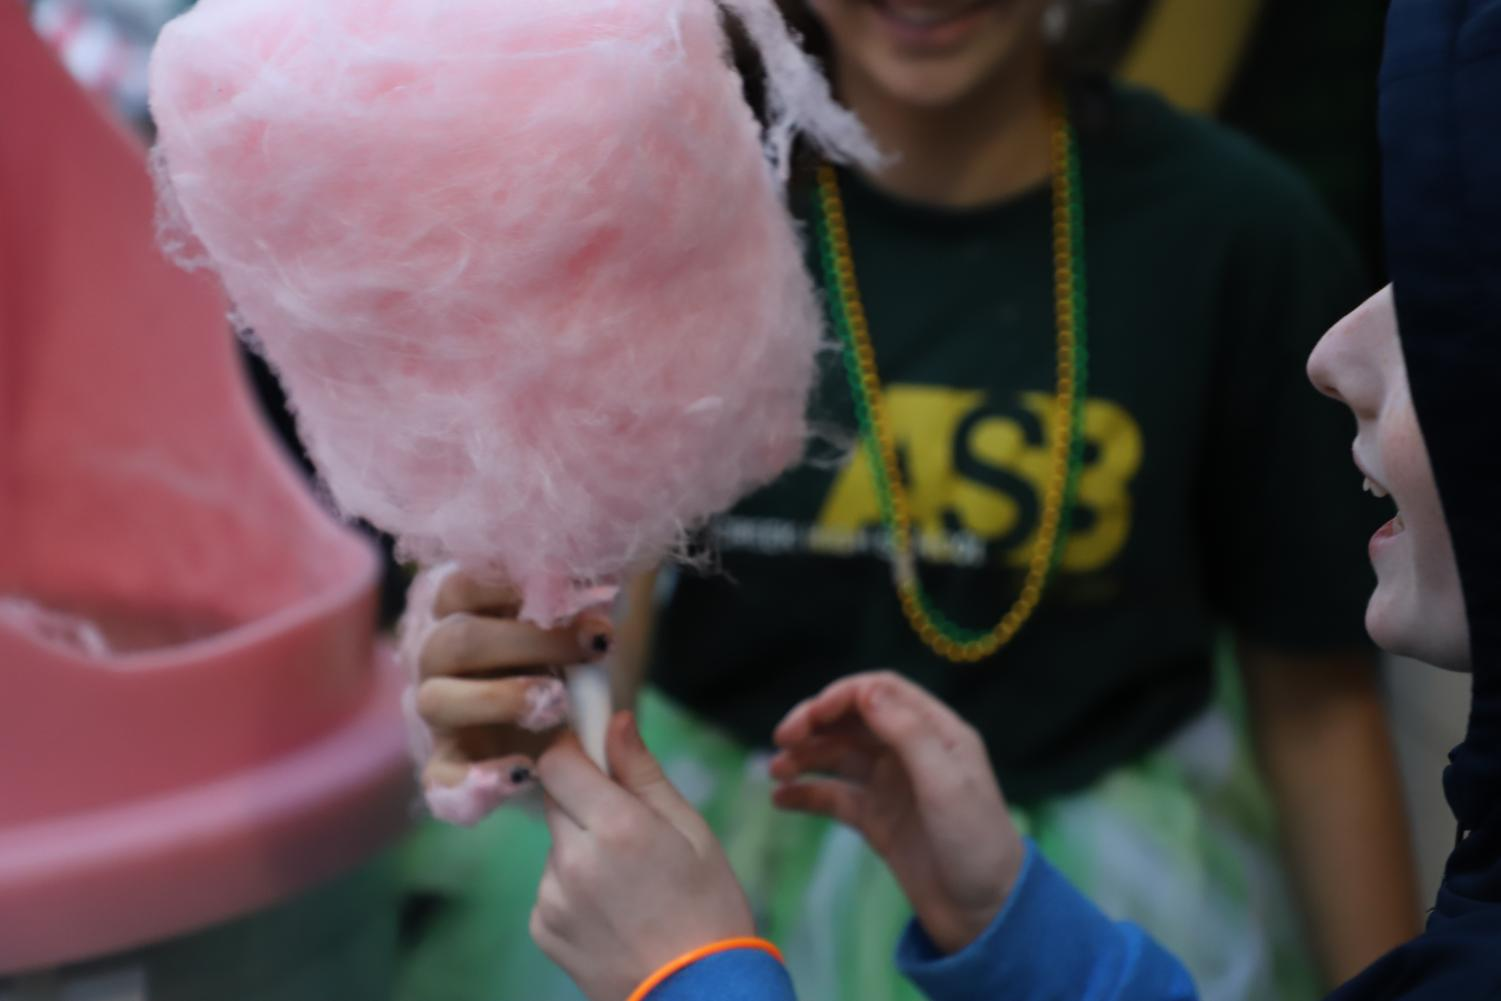 Freshman+Zoebelle+serves+cotton+candy+to+little+kids+before+the+start+of+the+game.+The+athletic+mall+was+filled+with+booths+ranging+in+candy+to+games%2C+to+satisfy+each+students+perfect+idea+of+Hoopcoming.